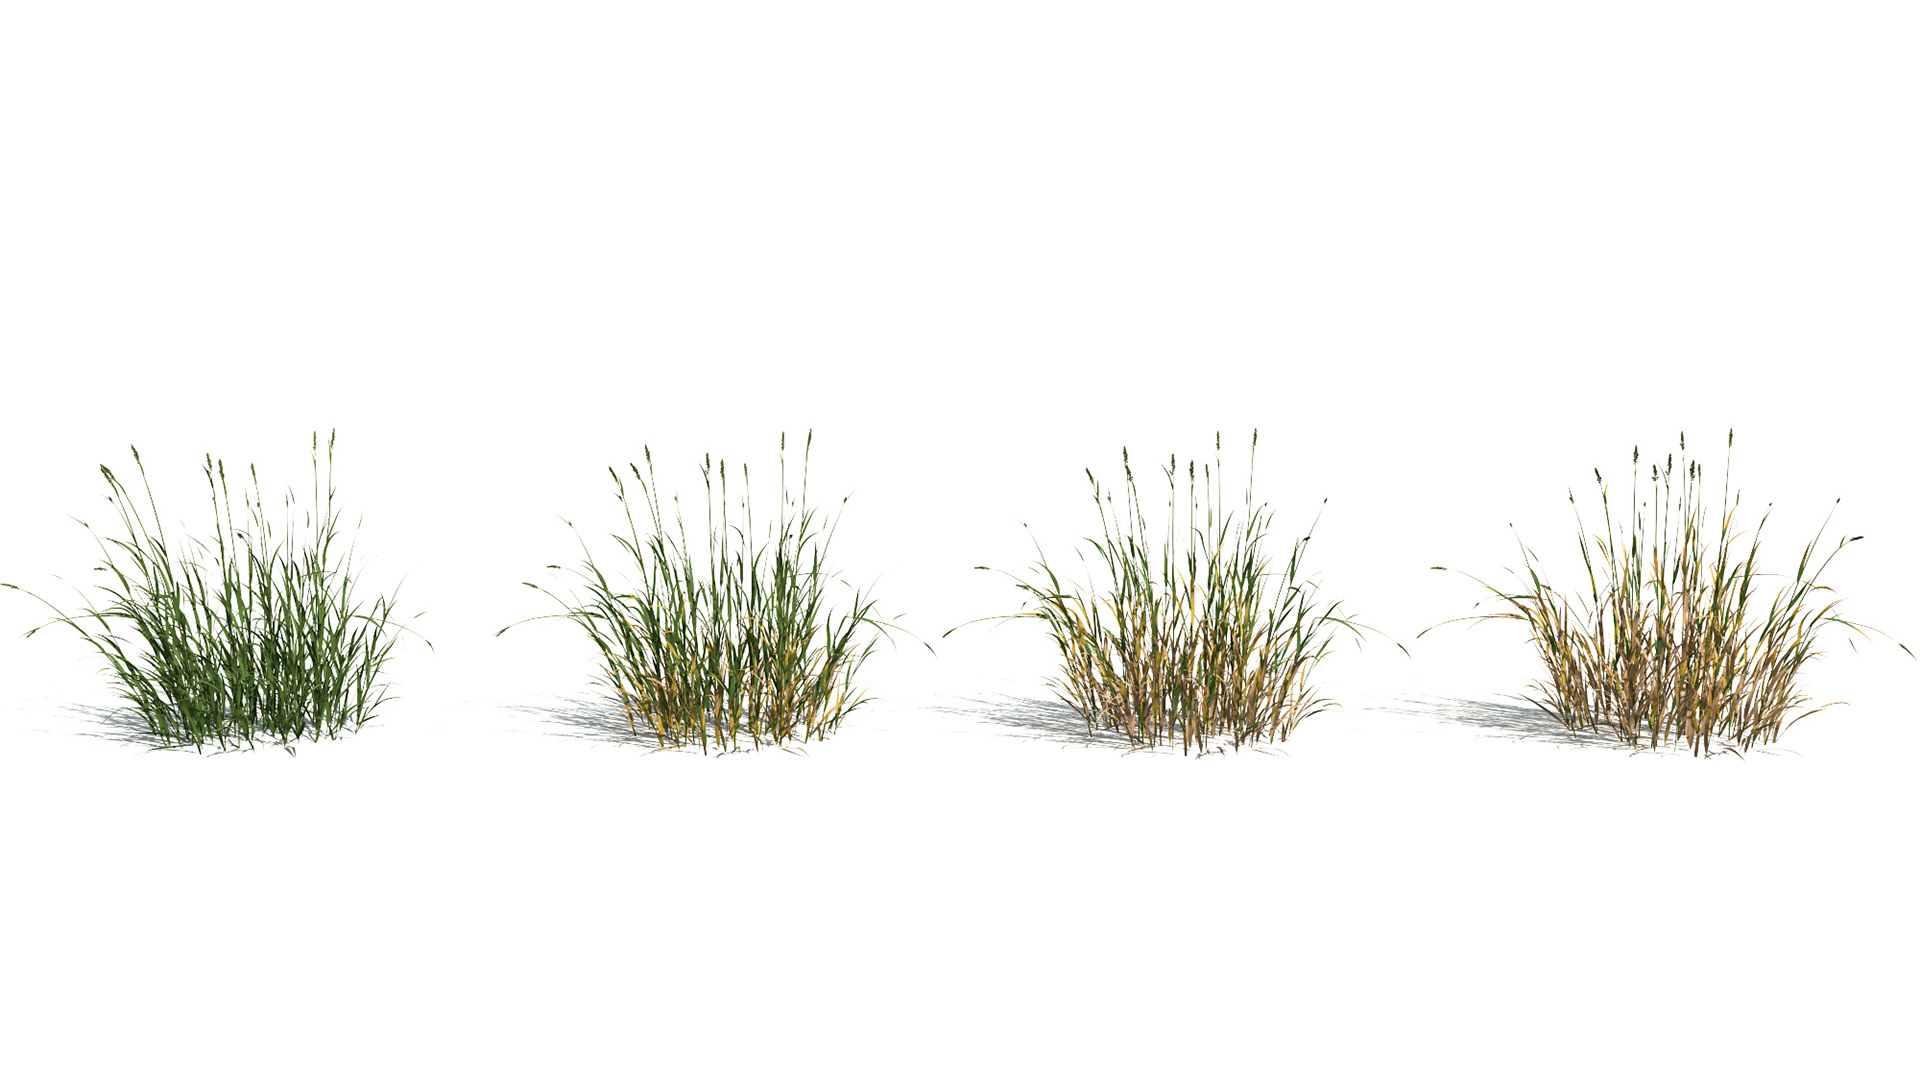 3D model of the Reed canary grass Phalaris arundinacea health variations